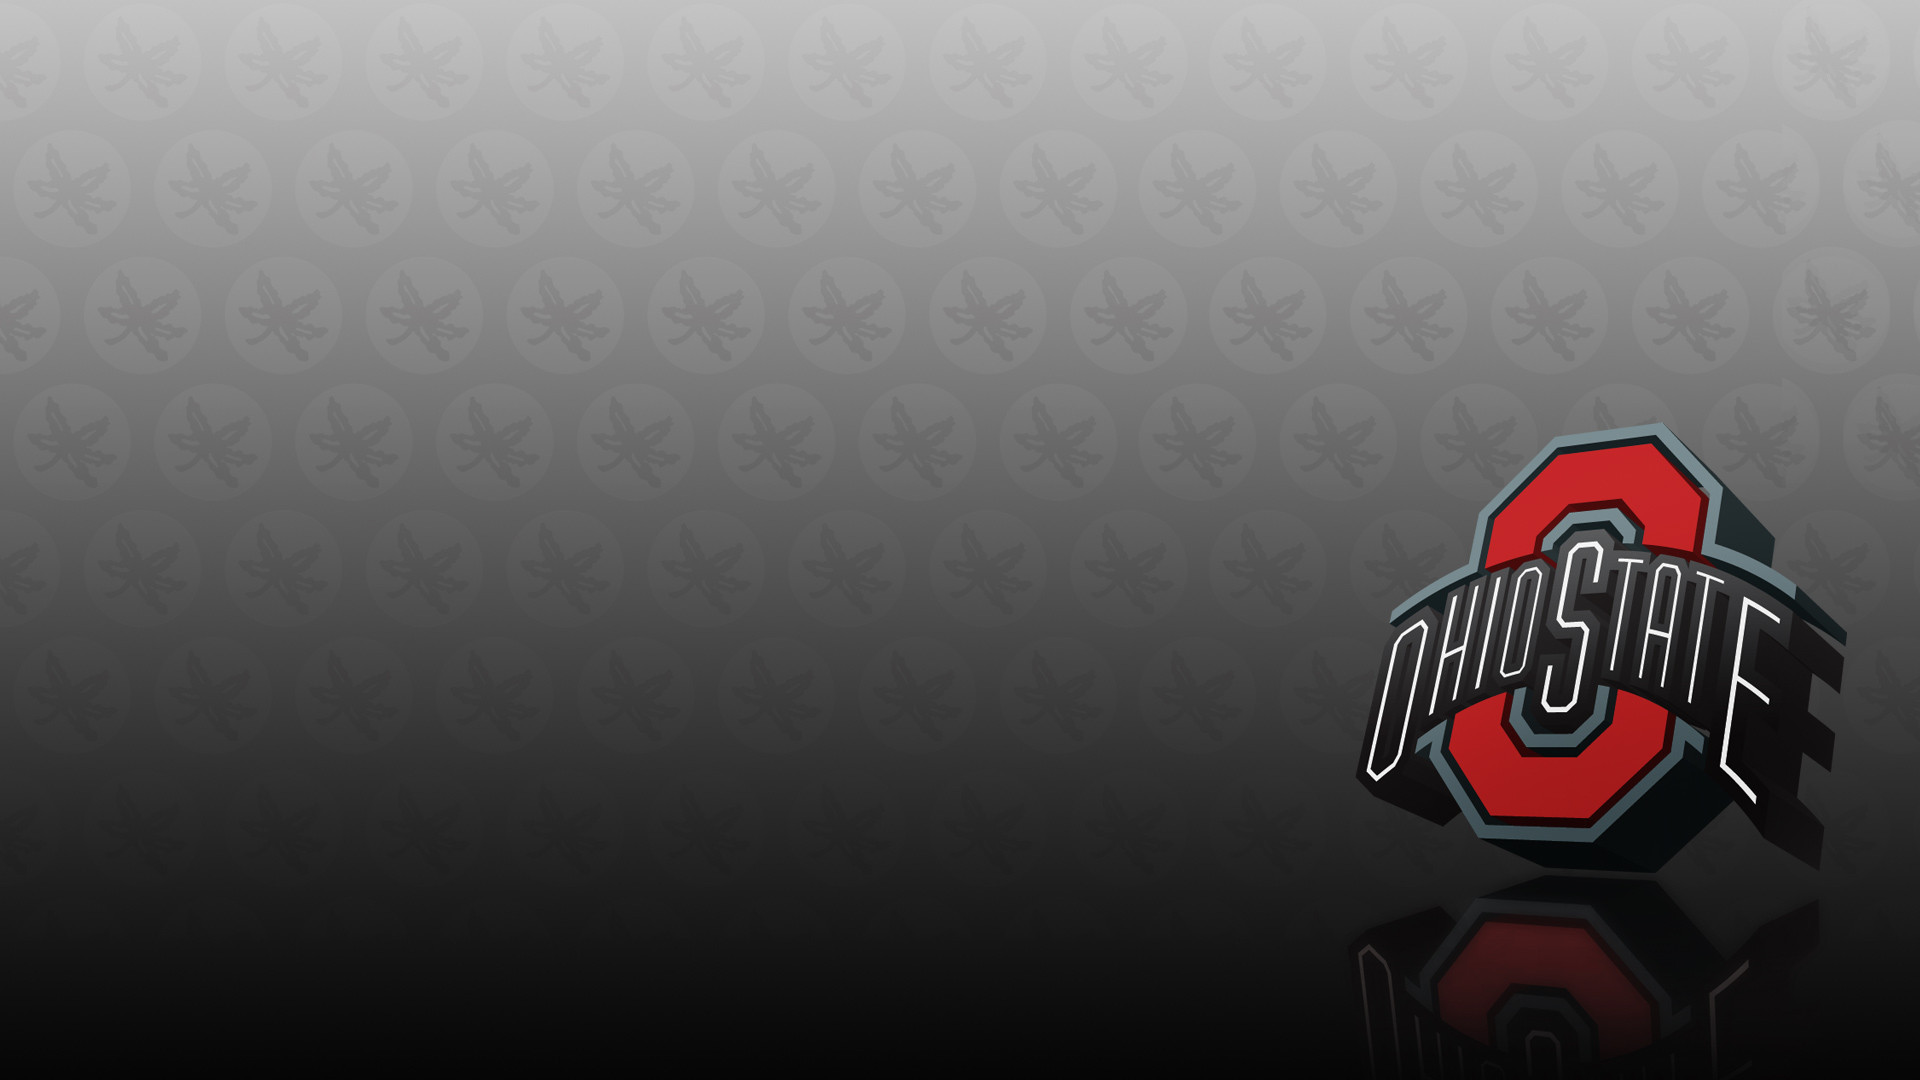 Ohio State Buckeyes Wallpapers (68 Wallpapers)